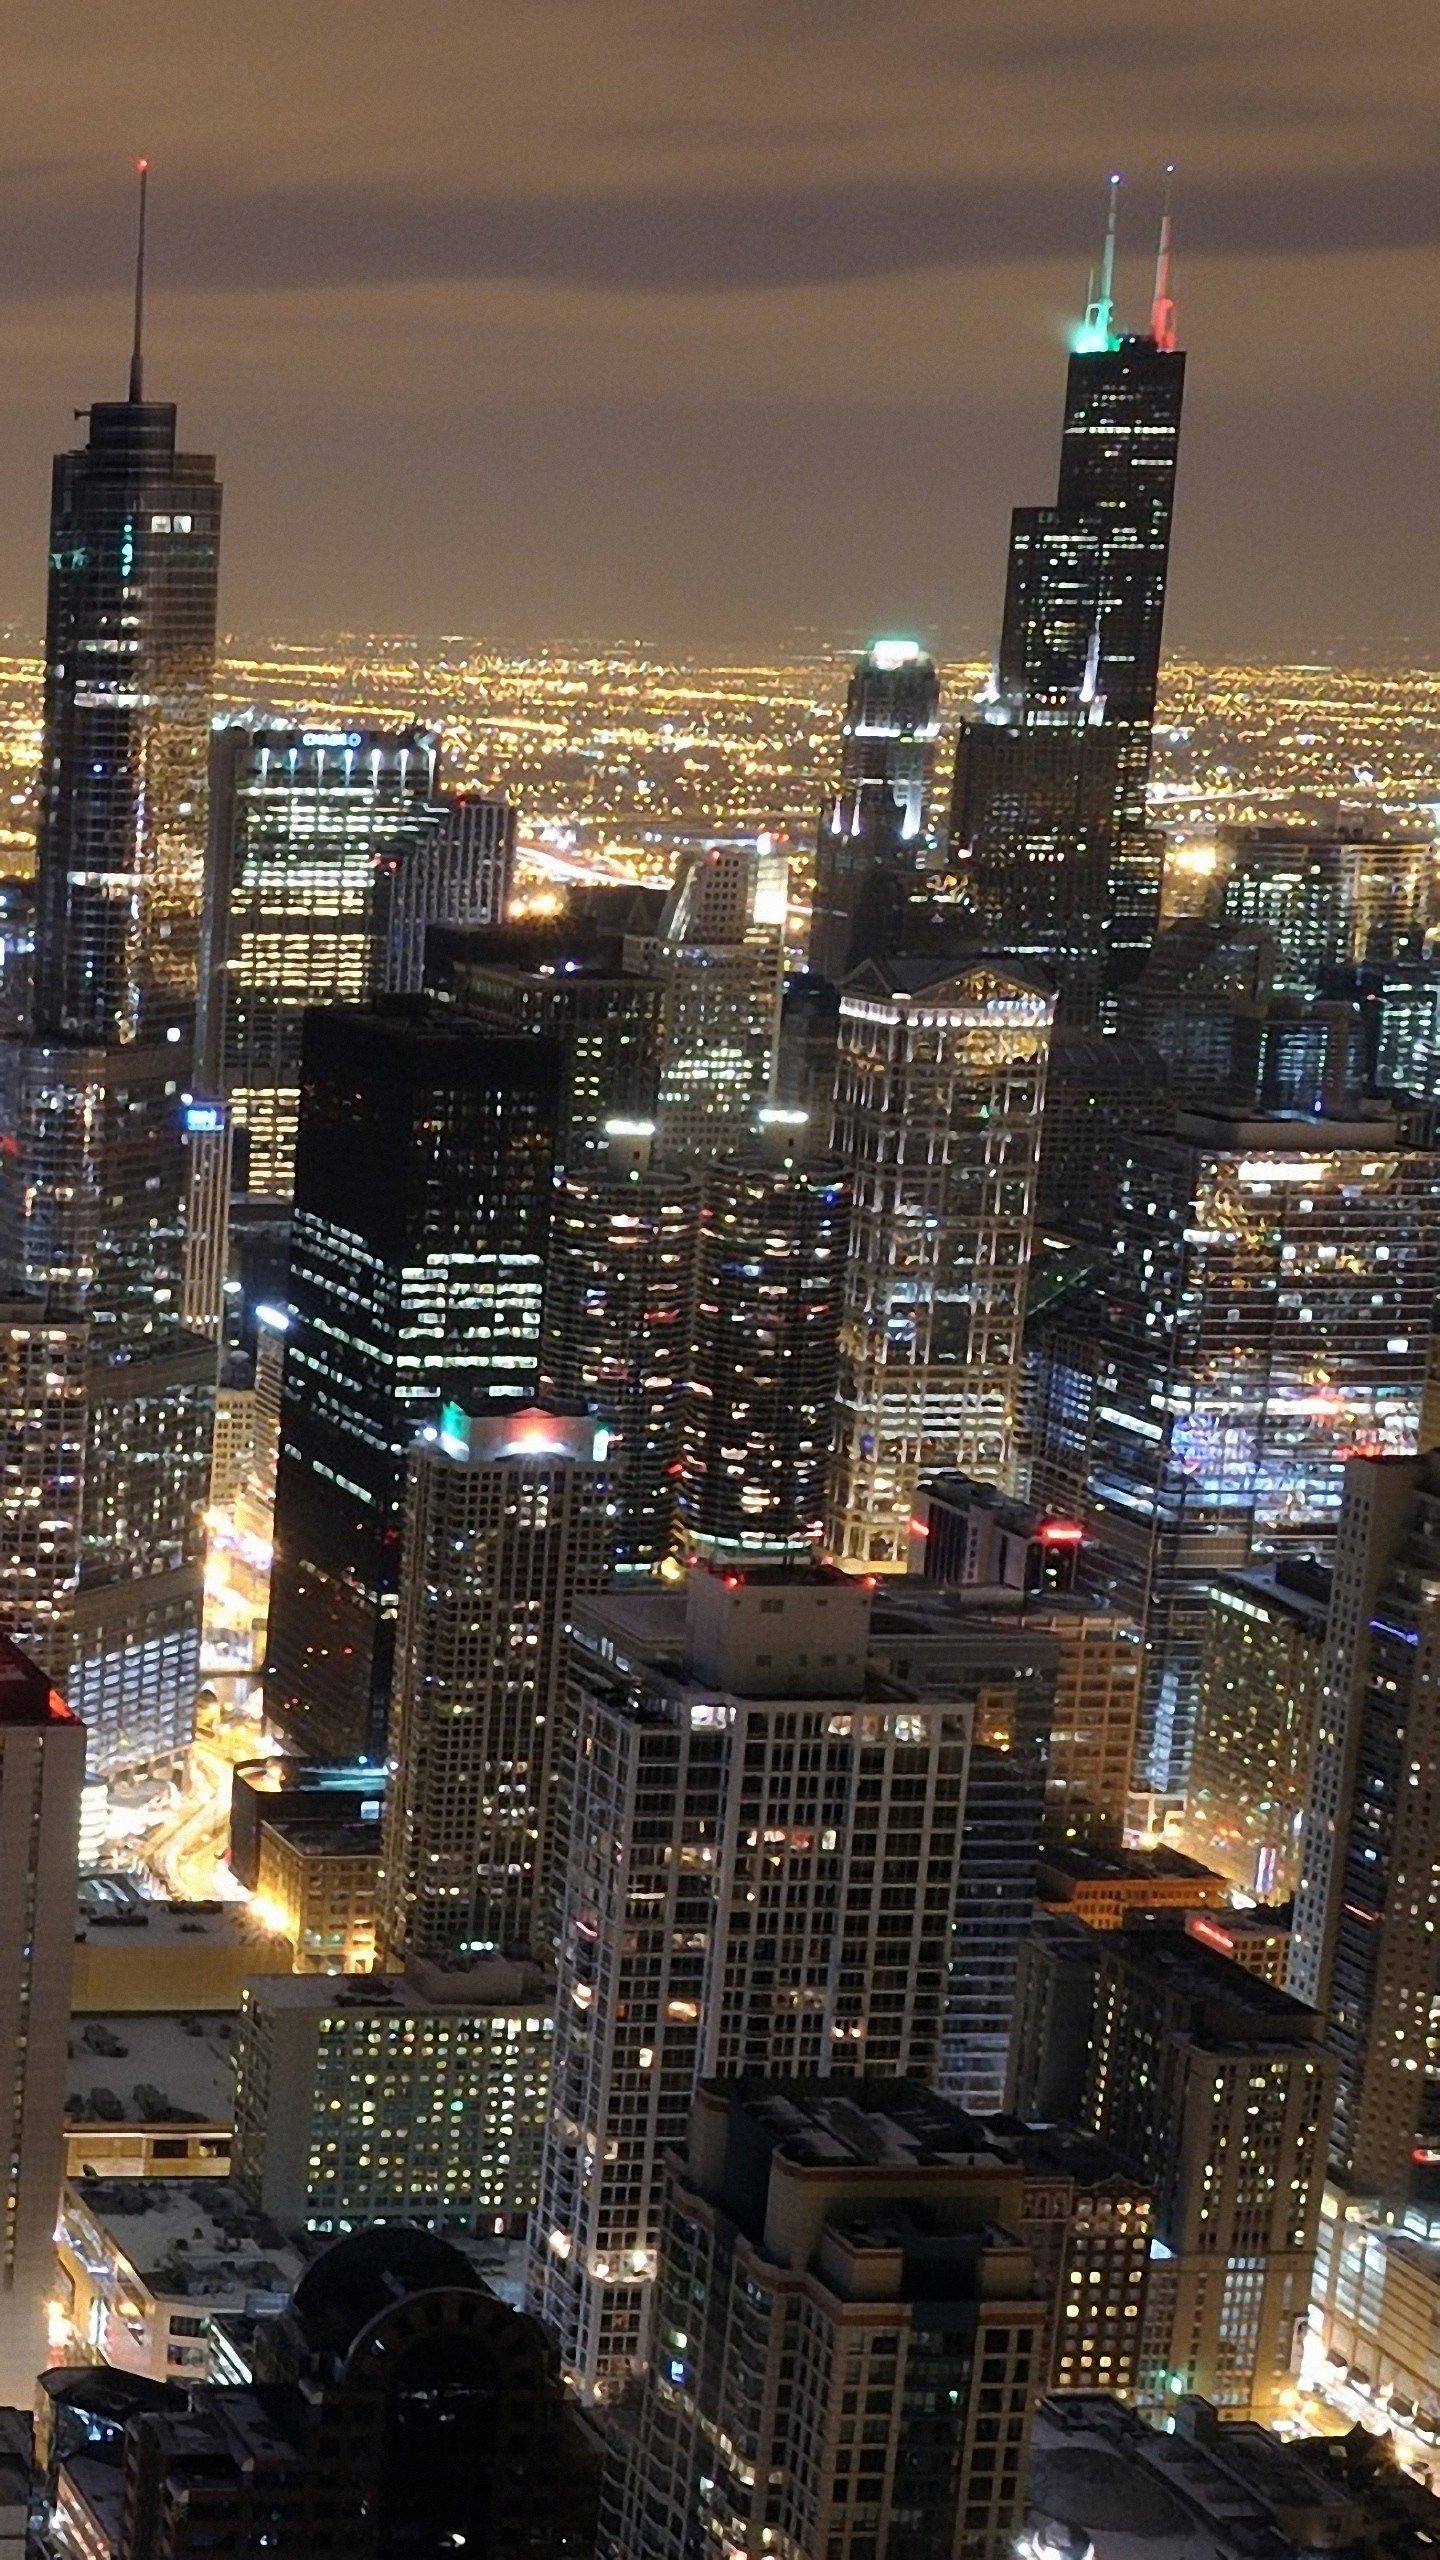 Must see Wallpaper Night Chicago - 1102334-popular-chicago-skyline-wallpaper-1440x2560-for-android-50  Image.jpg